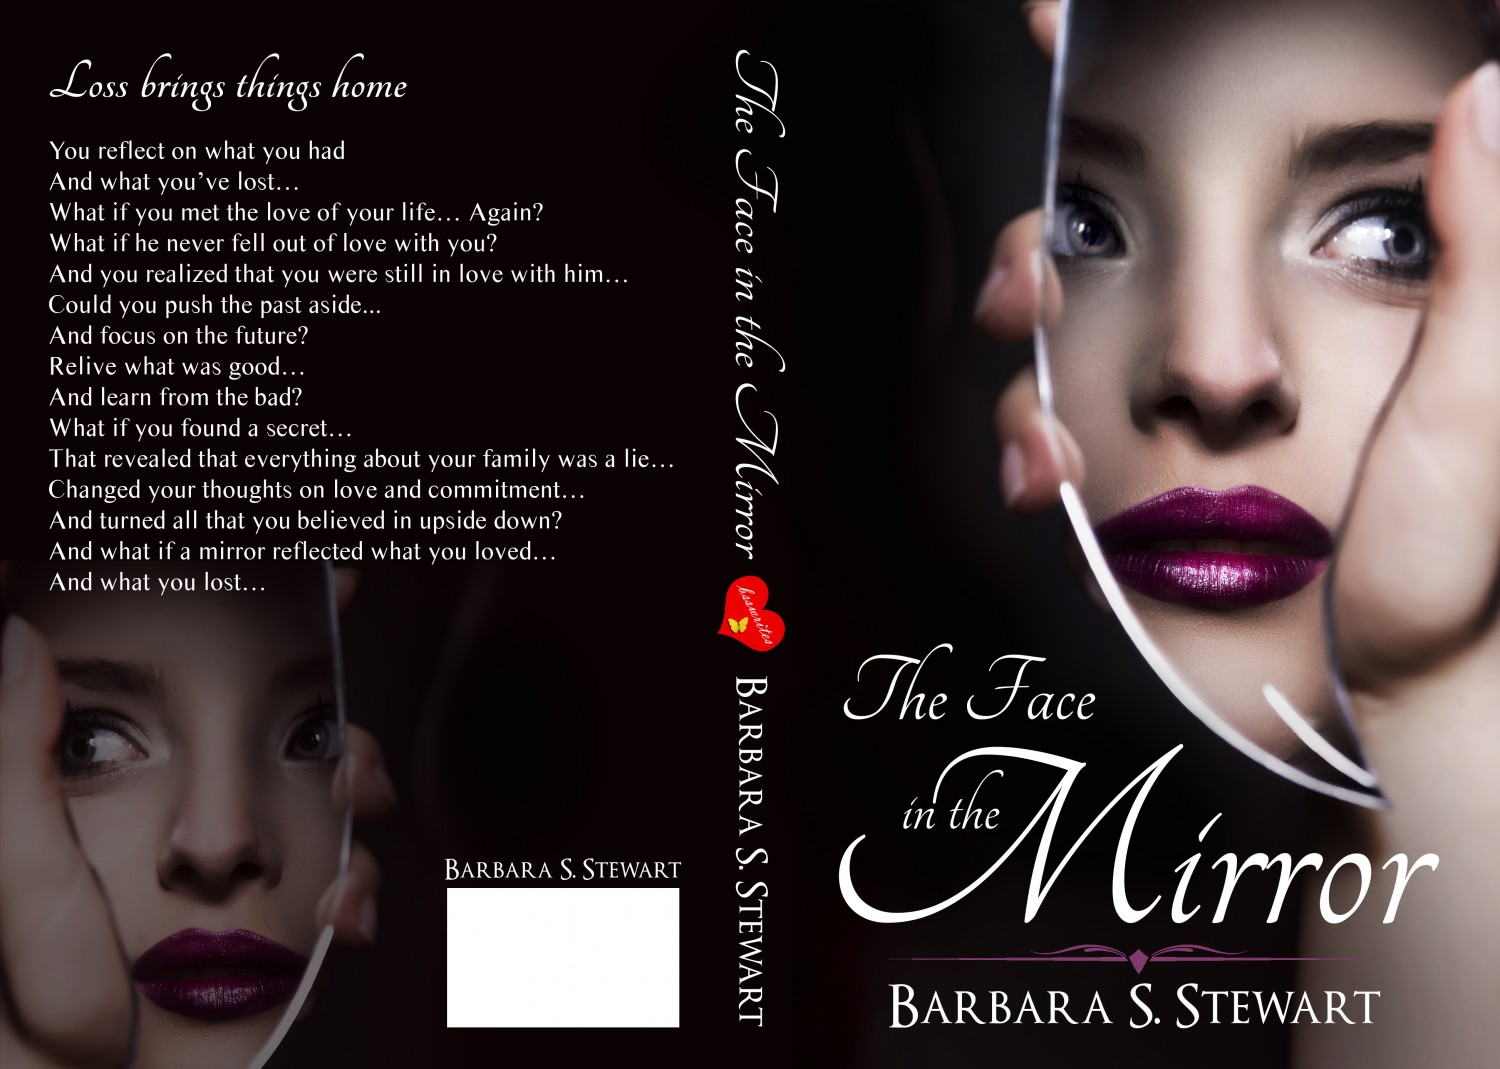 The Face in the Mirror Printable 330 6x9